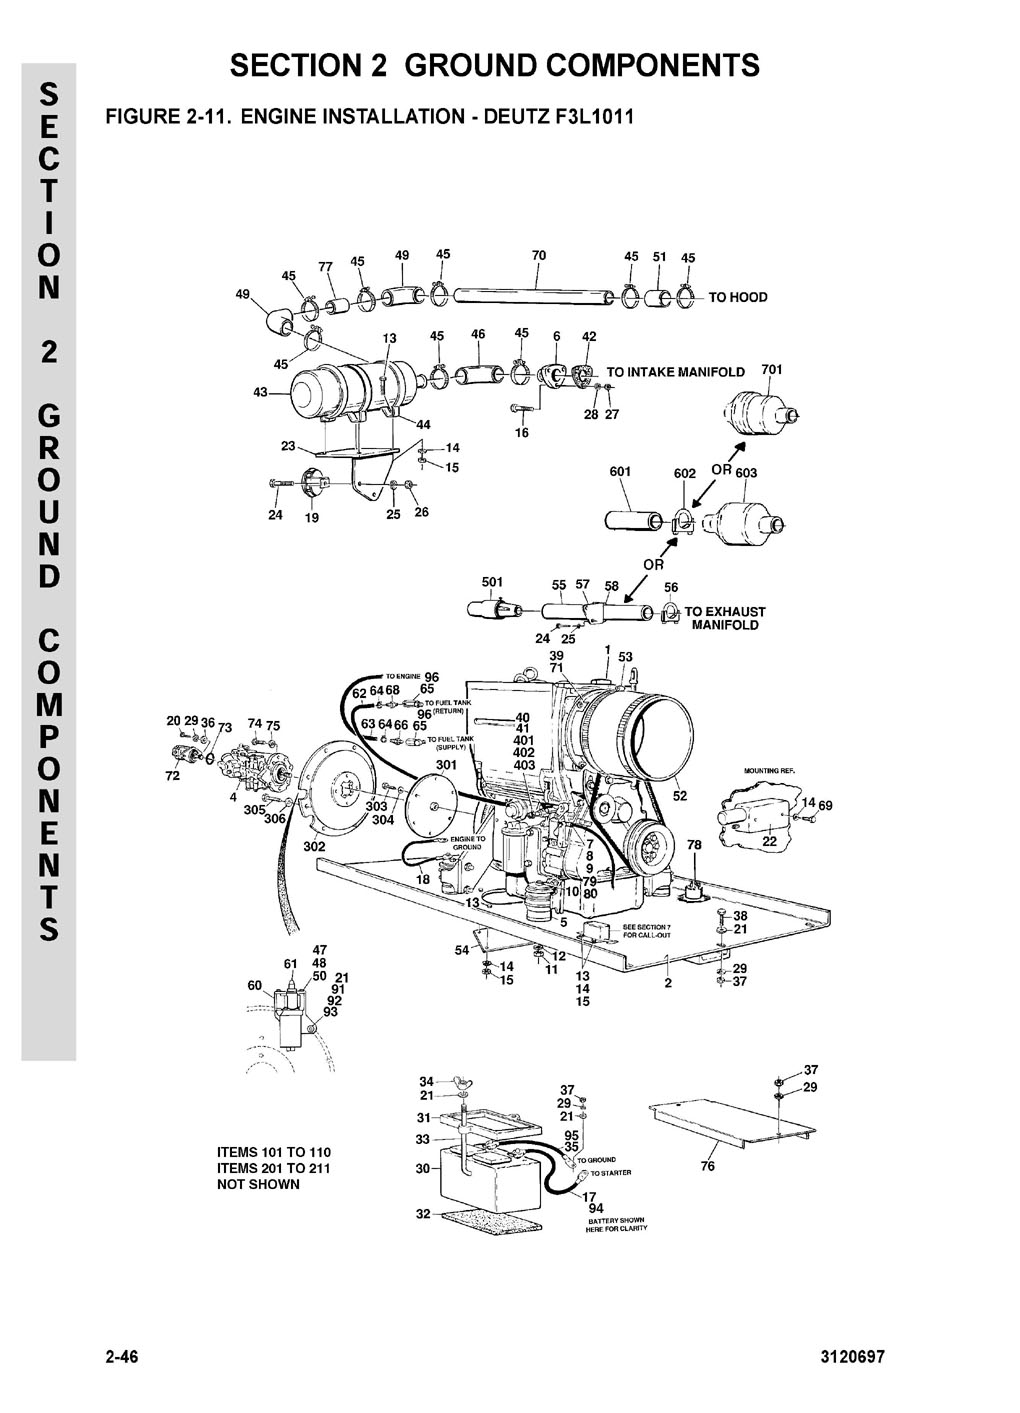 Diesel Engine BFM Service Manual. Pages German, English, French, Spanish  click image Displacement, bore stroke Displacement F2L1011F 1.